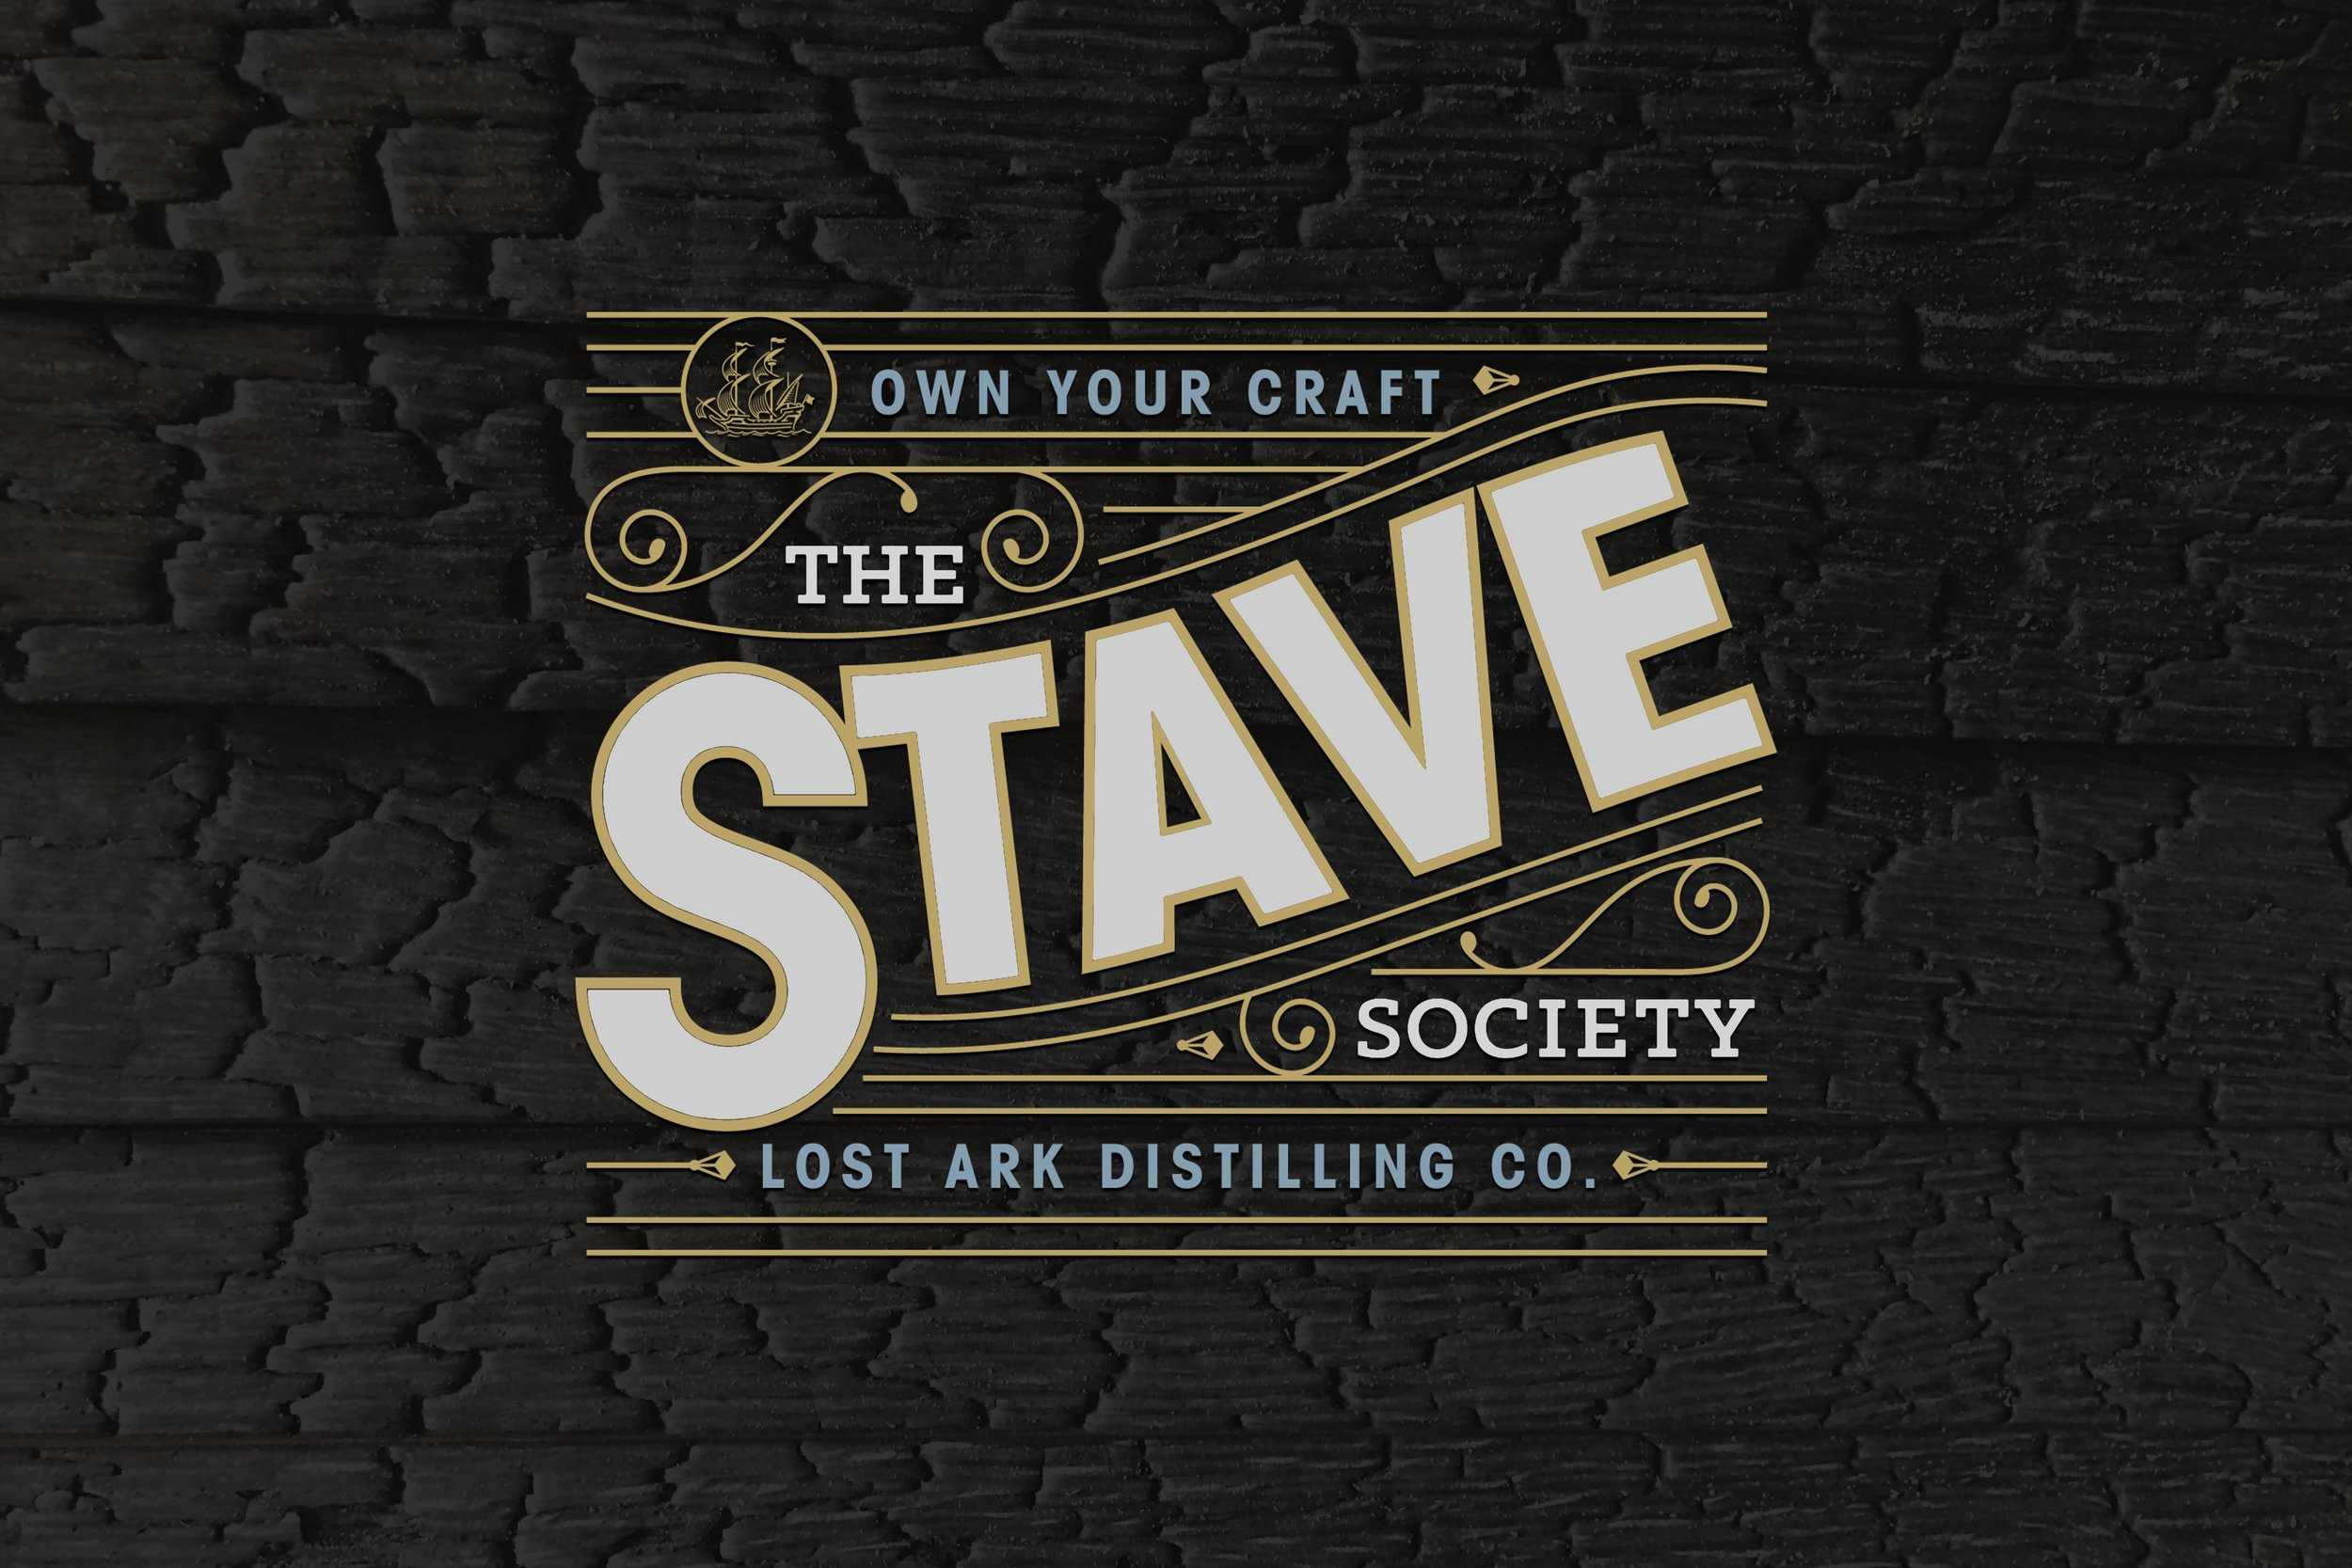 stave_society_texture_3.jpg